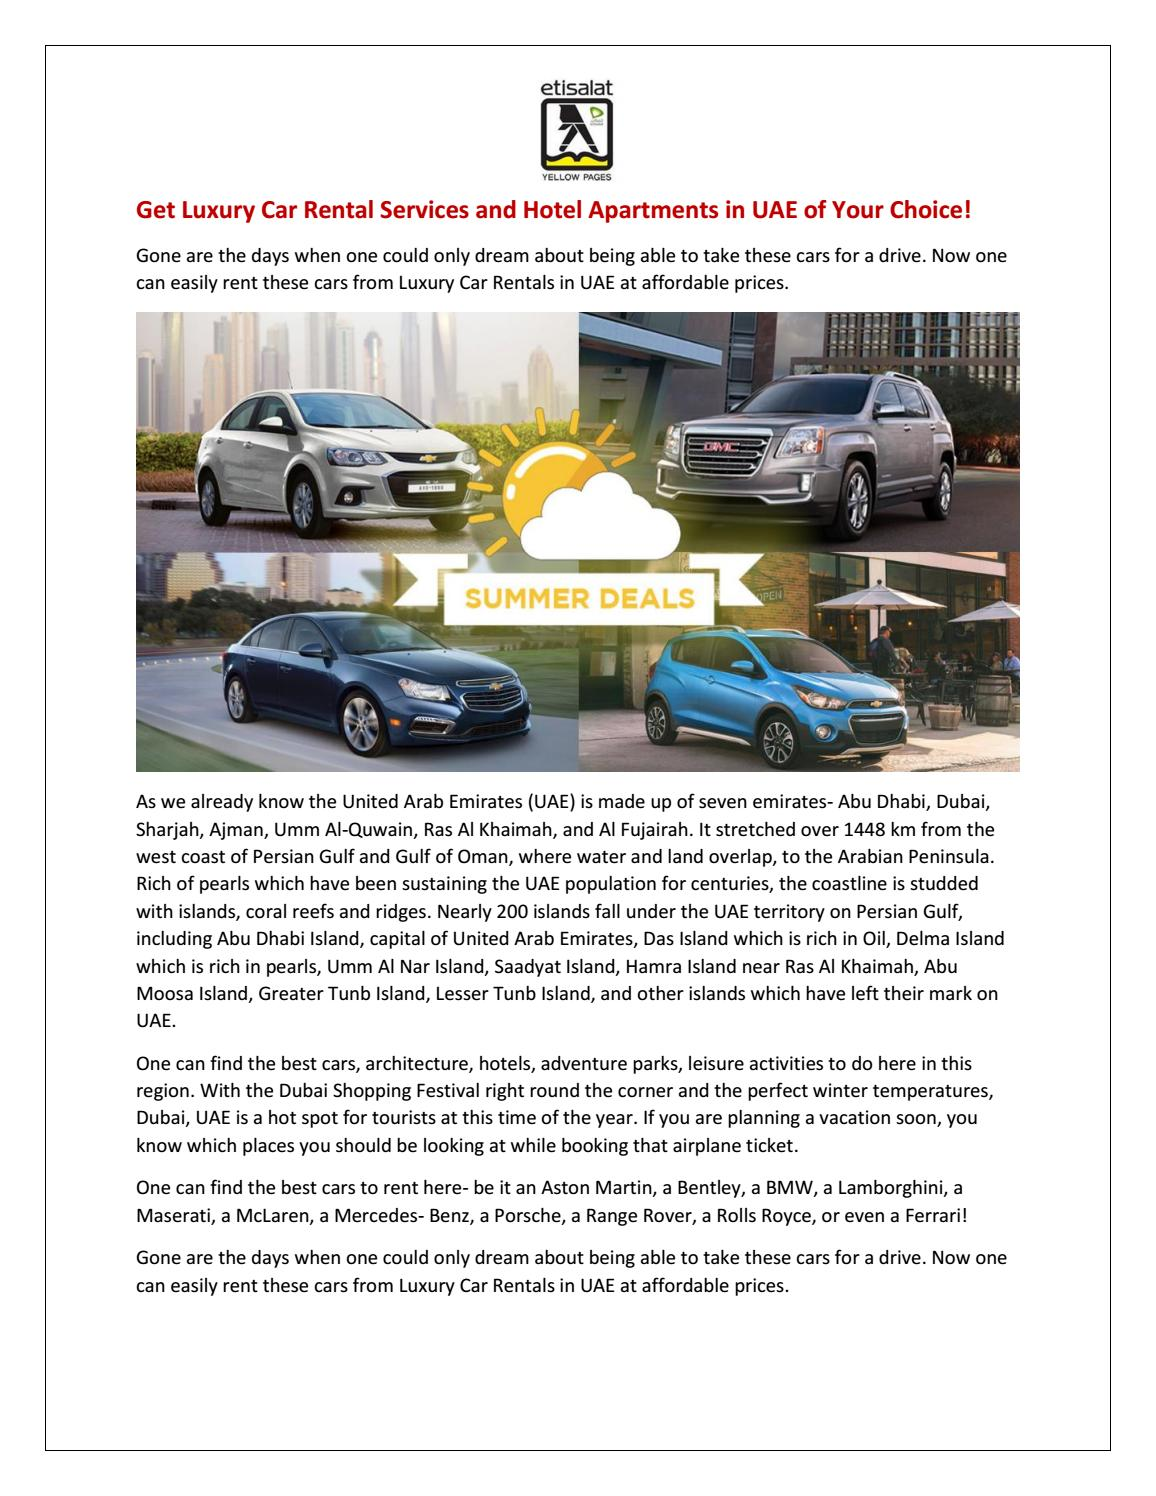 Luxury Car Rentals in UAE at Affordable Prices - Etisalat